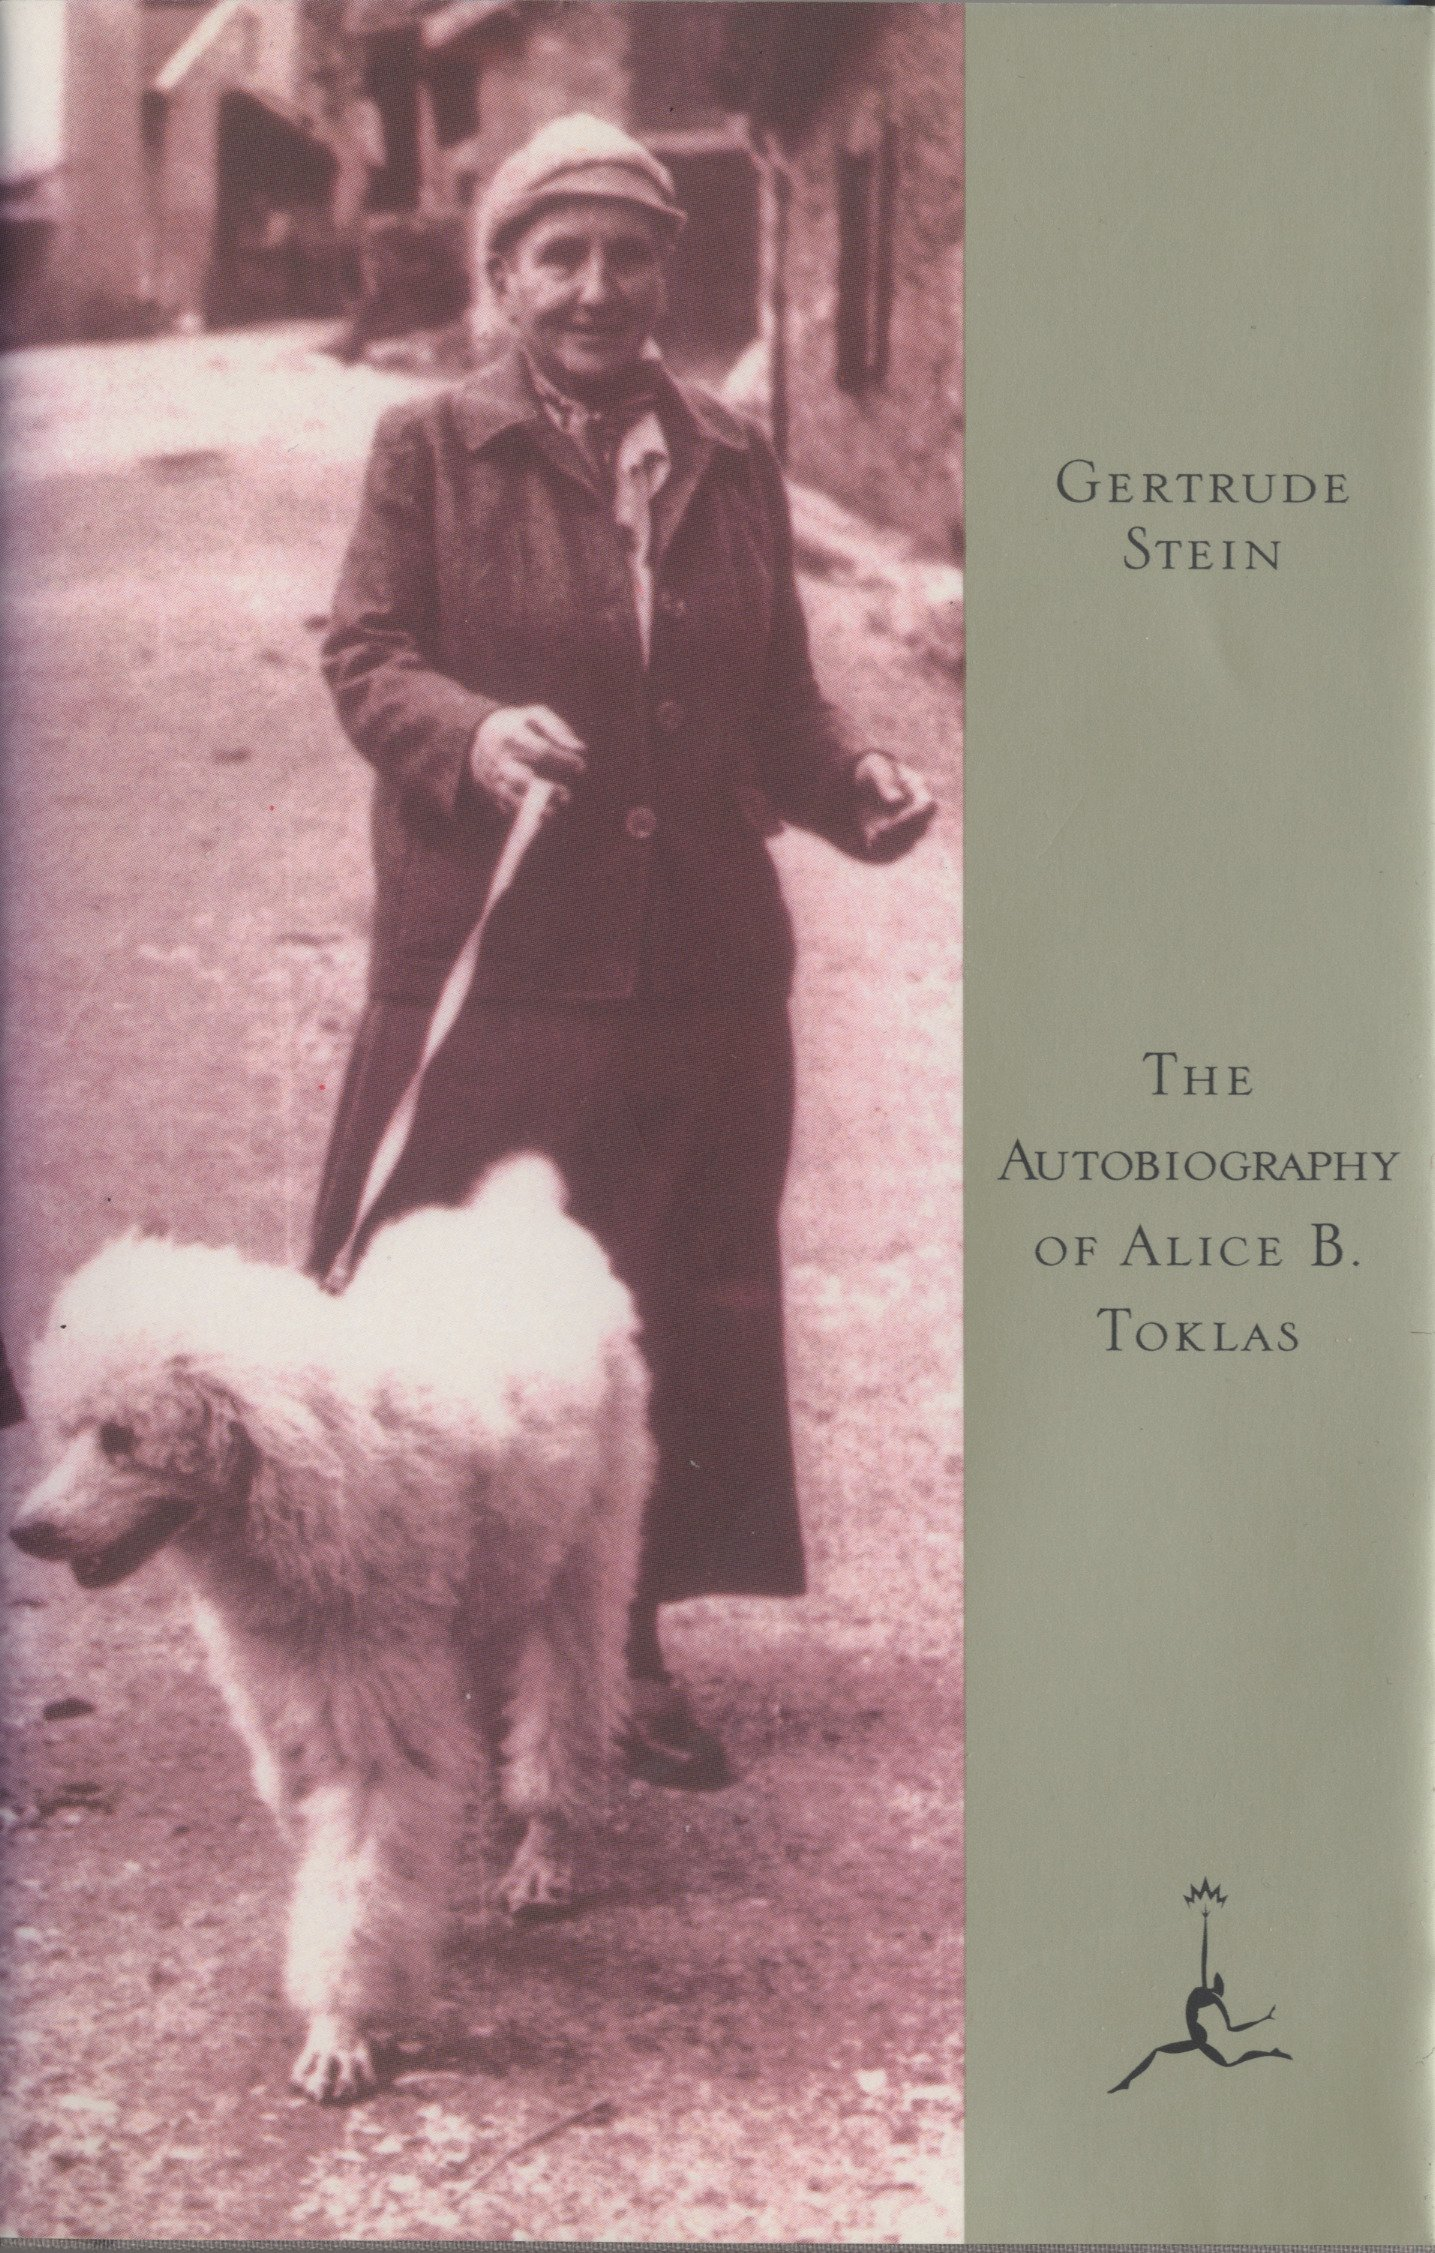 Cover Image of The Autobiography of Alice B. Toklas